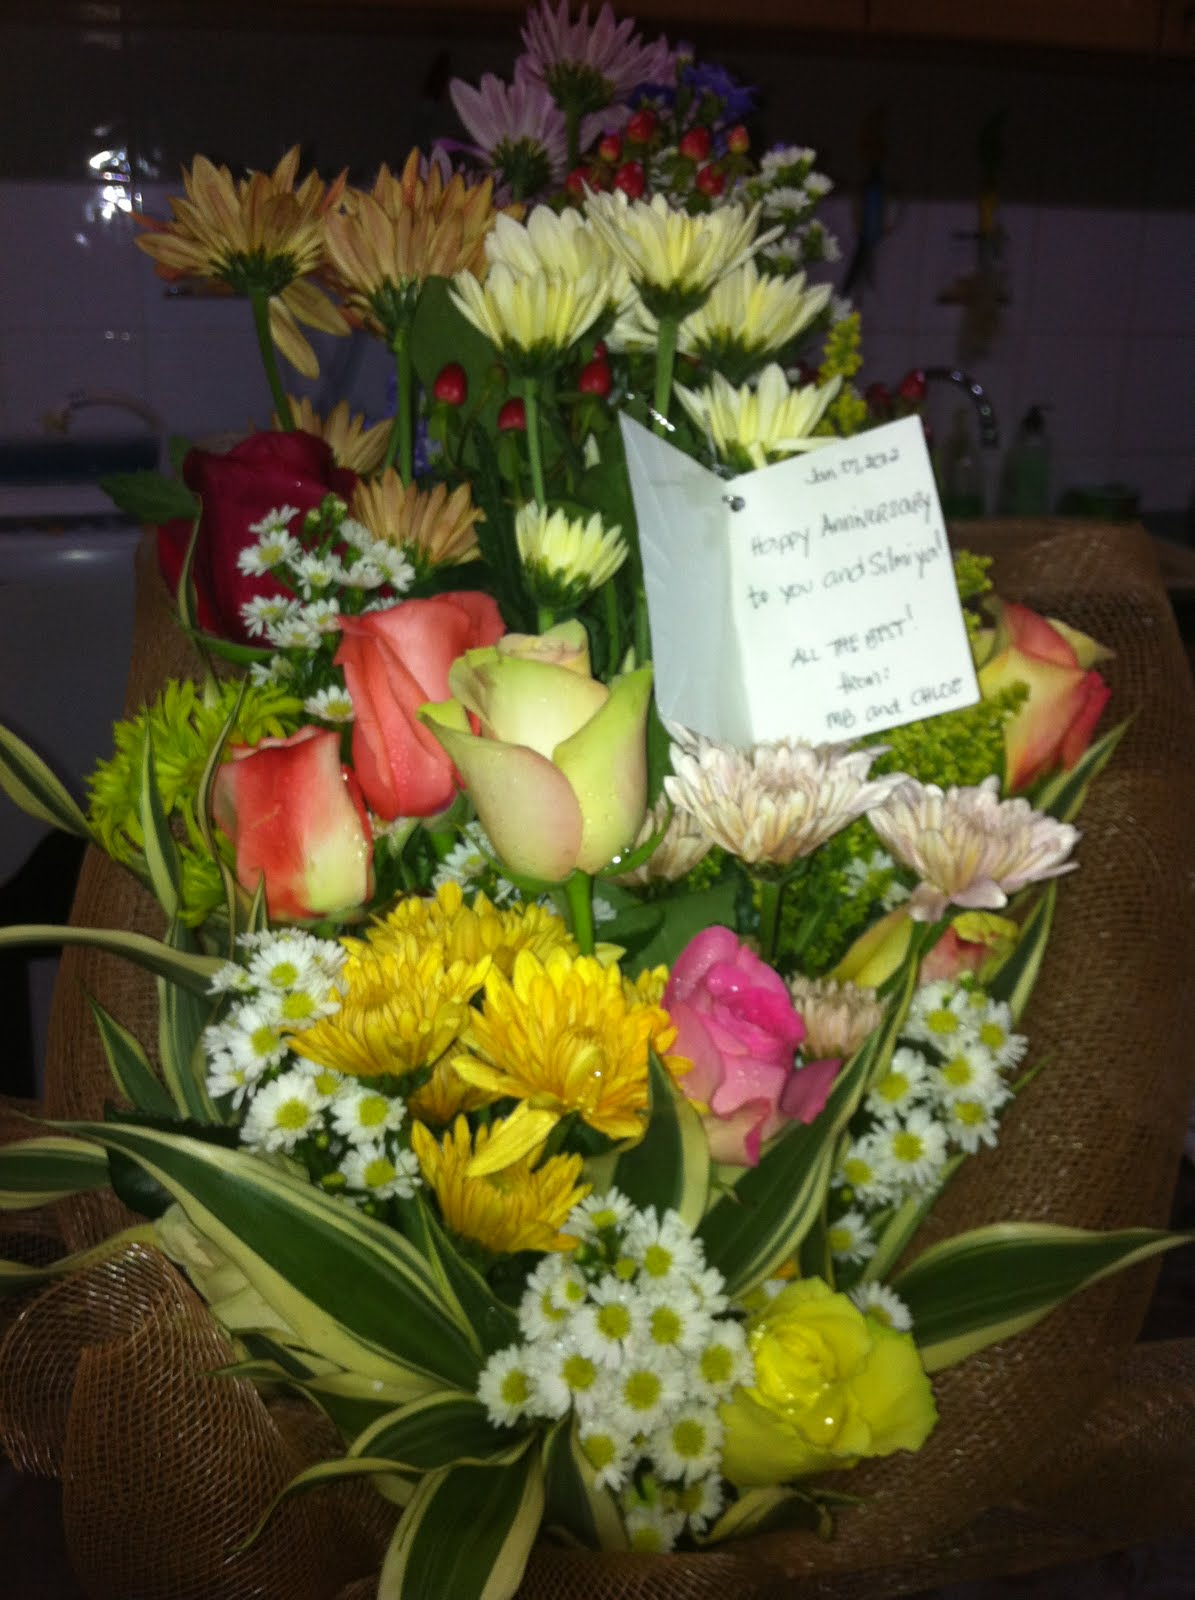 11th wedding anniversary flowers from boss